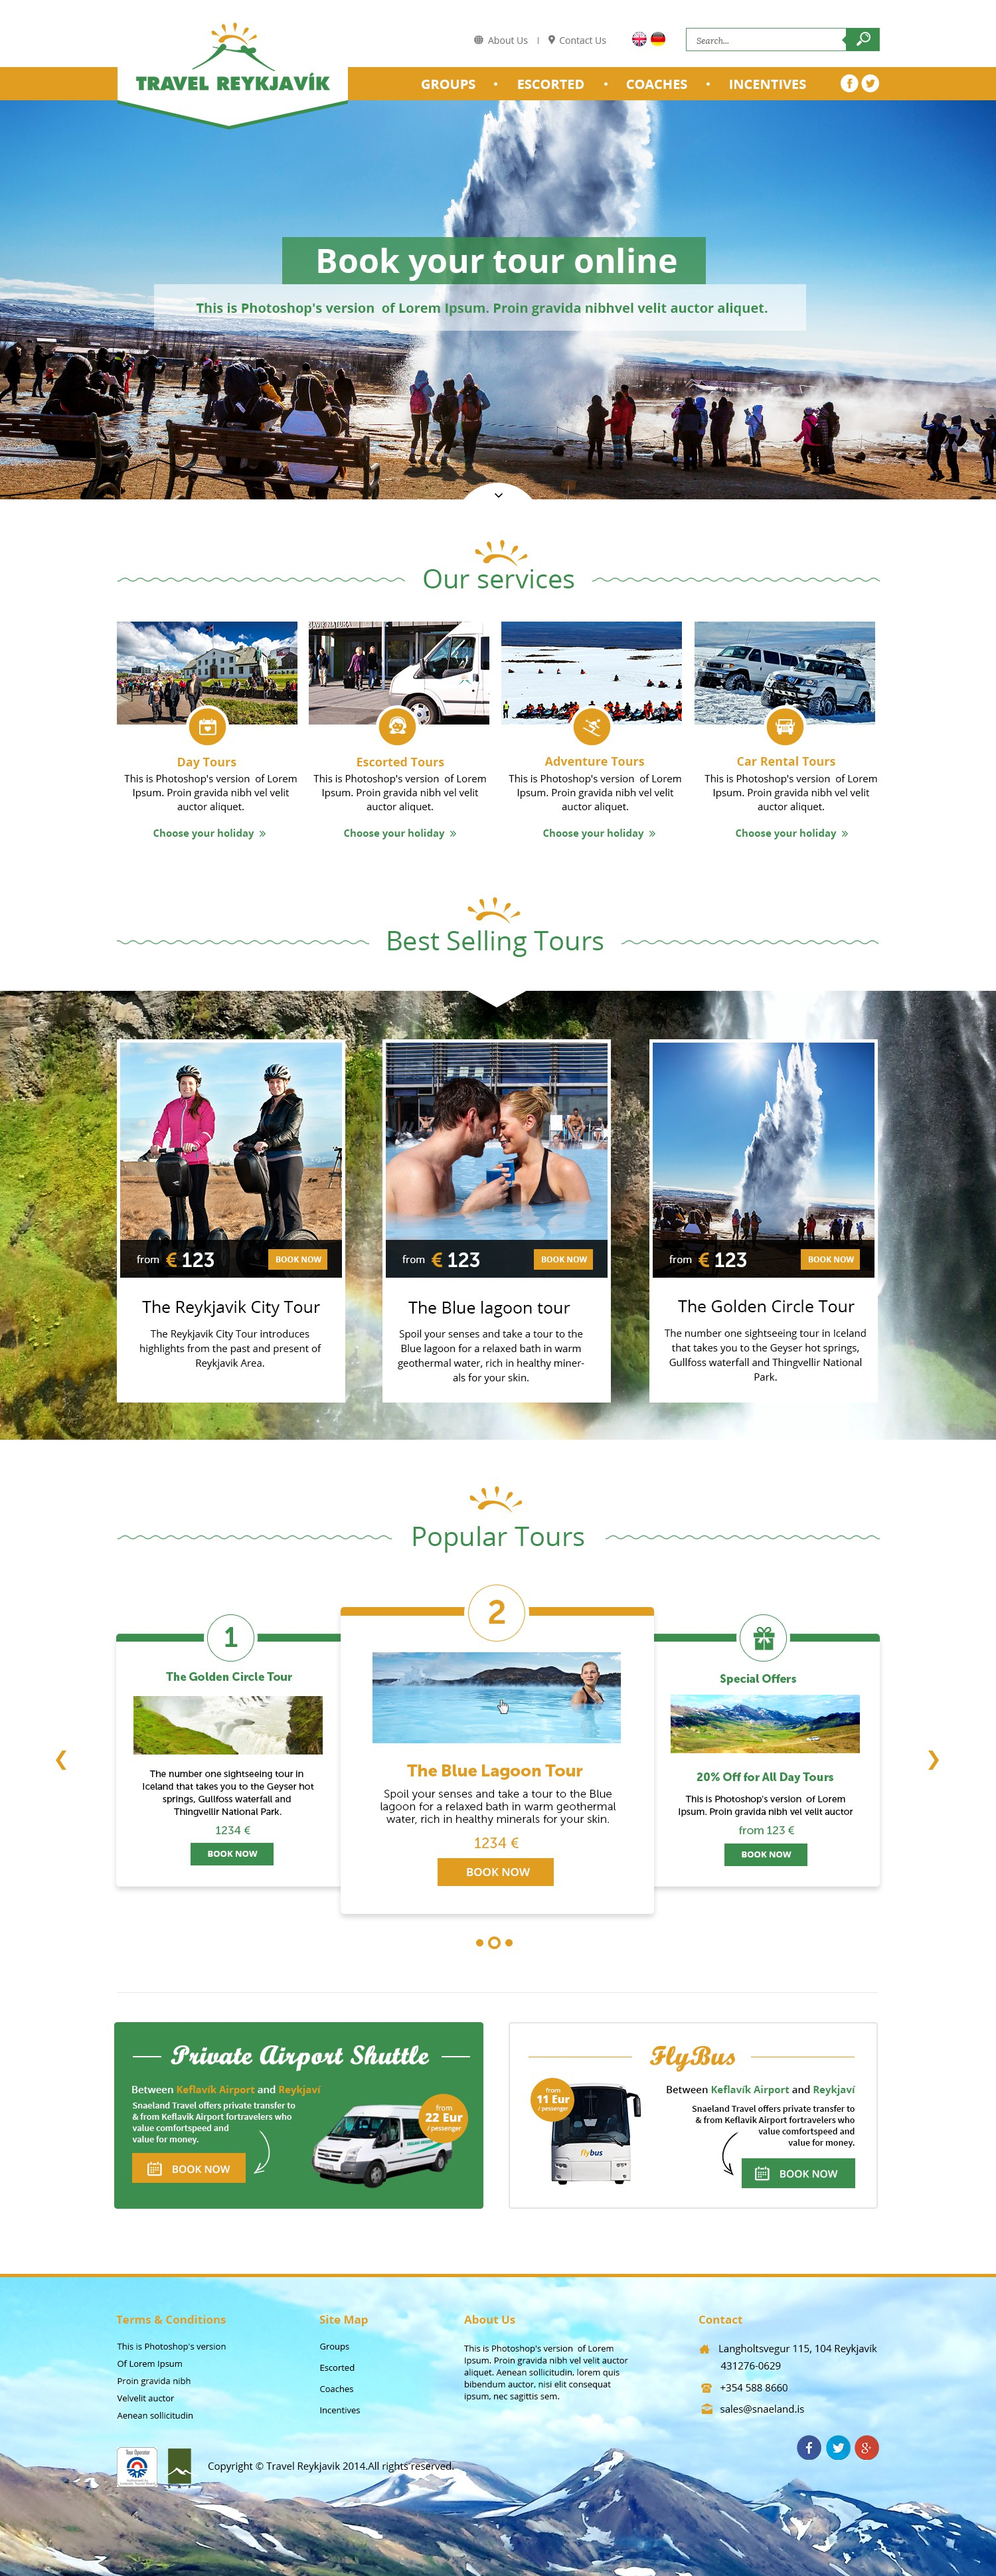 Create a frontpage for a Travel Site in Reykjavik, Iceland